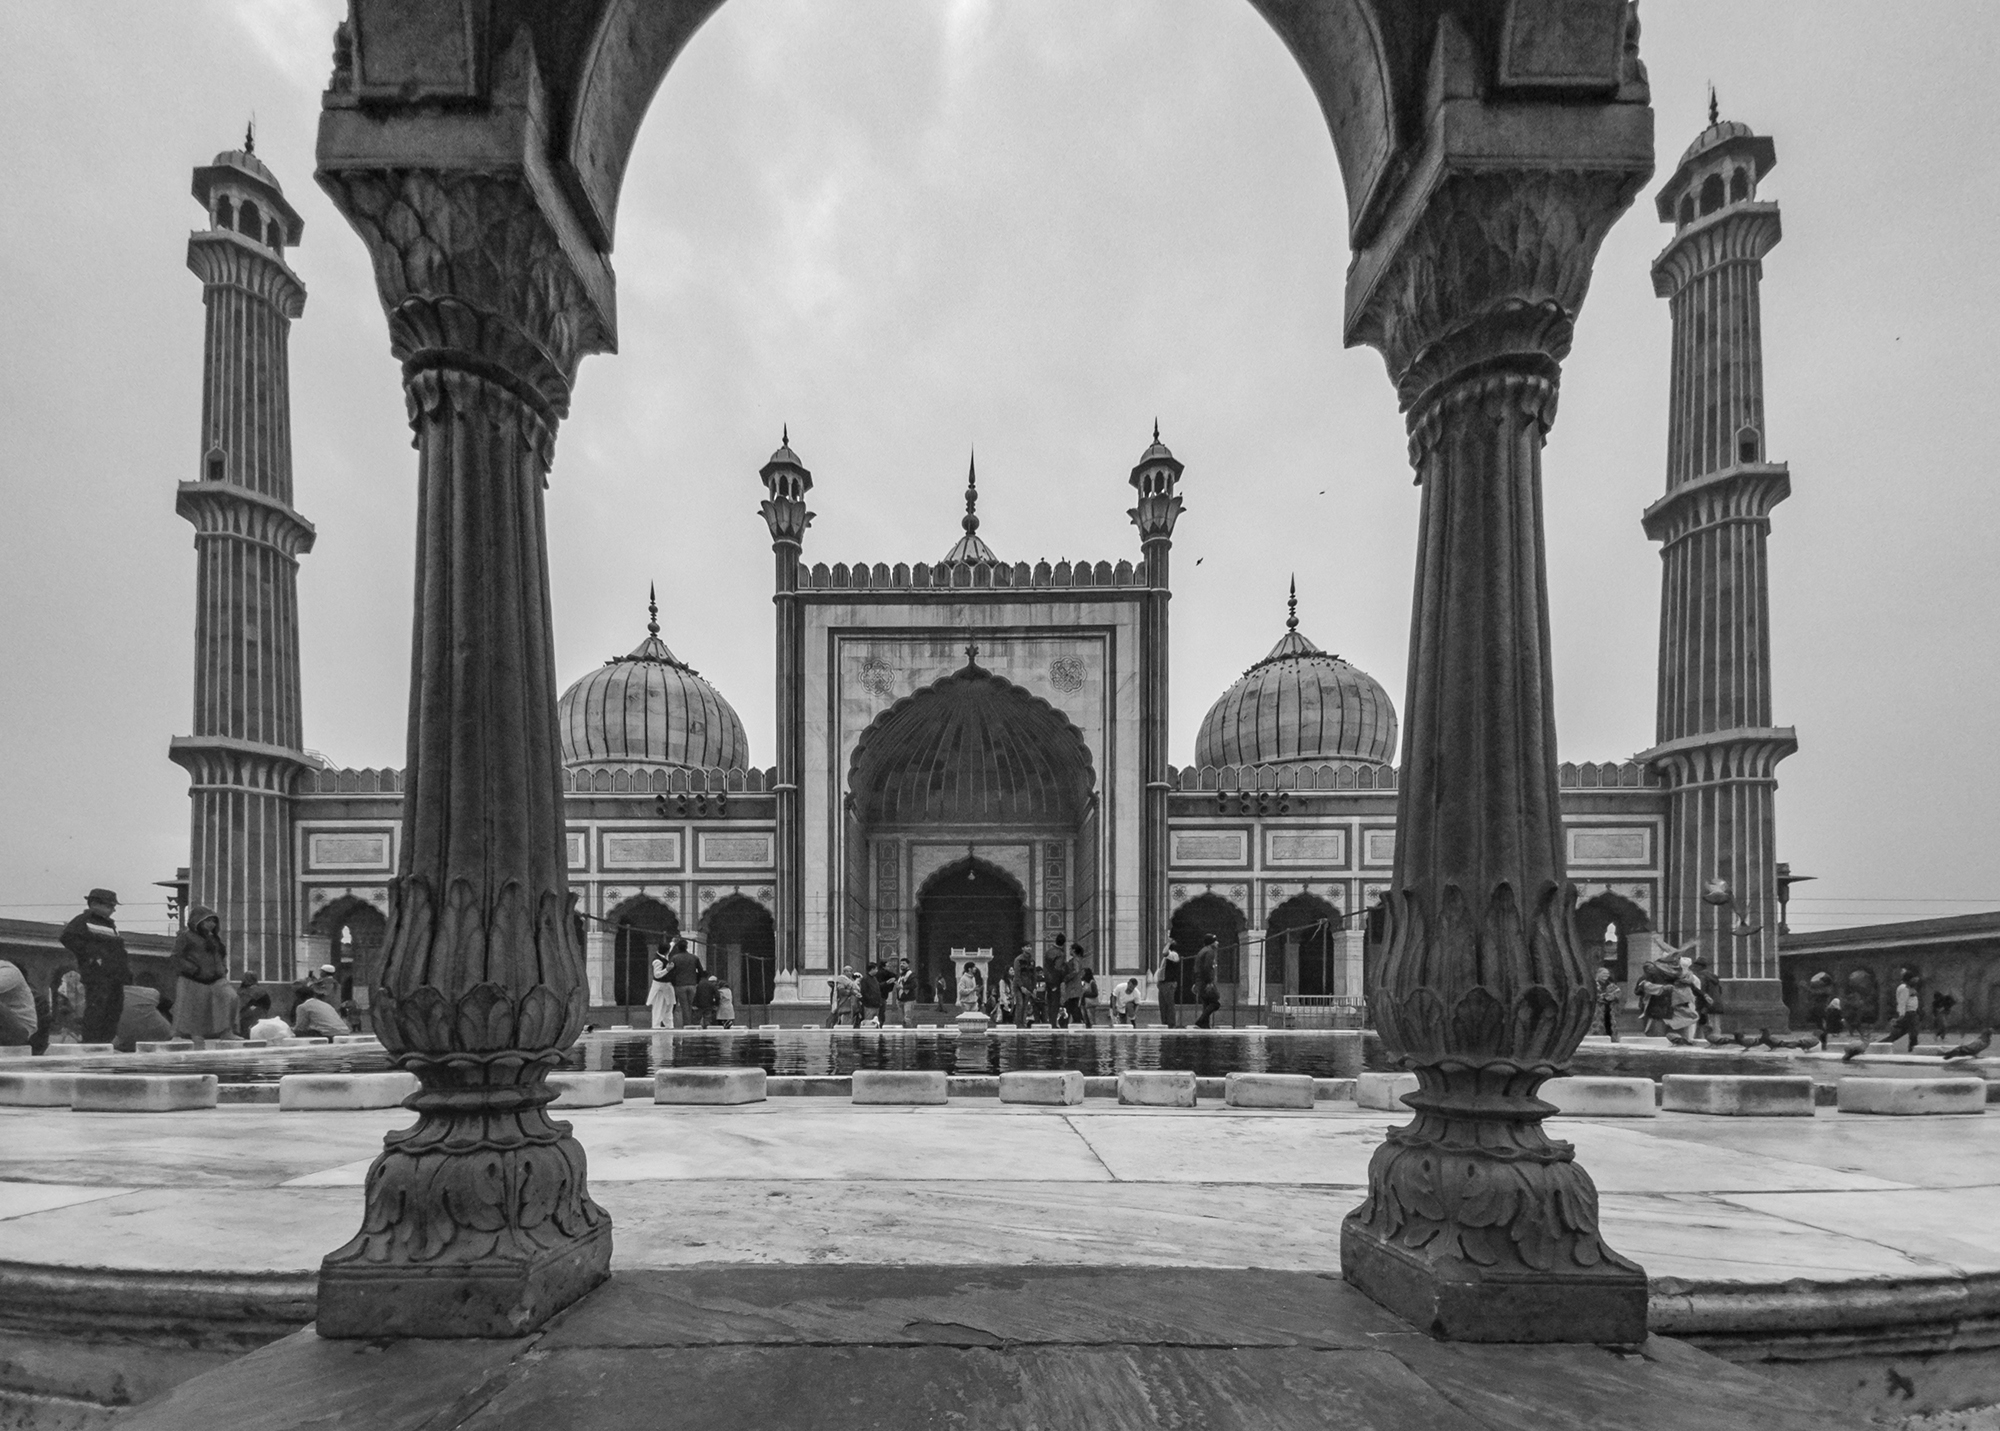 Jama Mosque in Delhi is one of the largest mosques in India built by mughal emperor Shah Jahan.